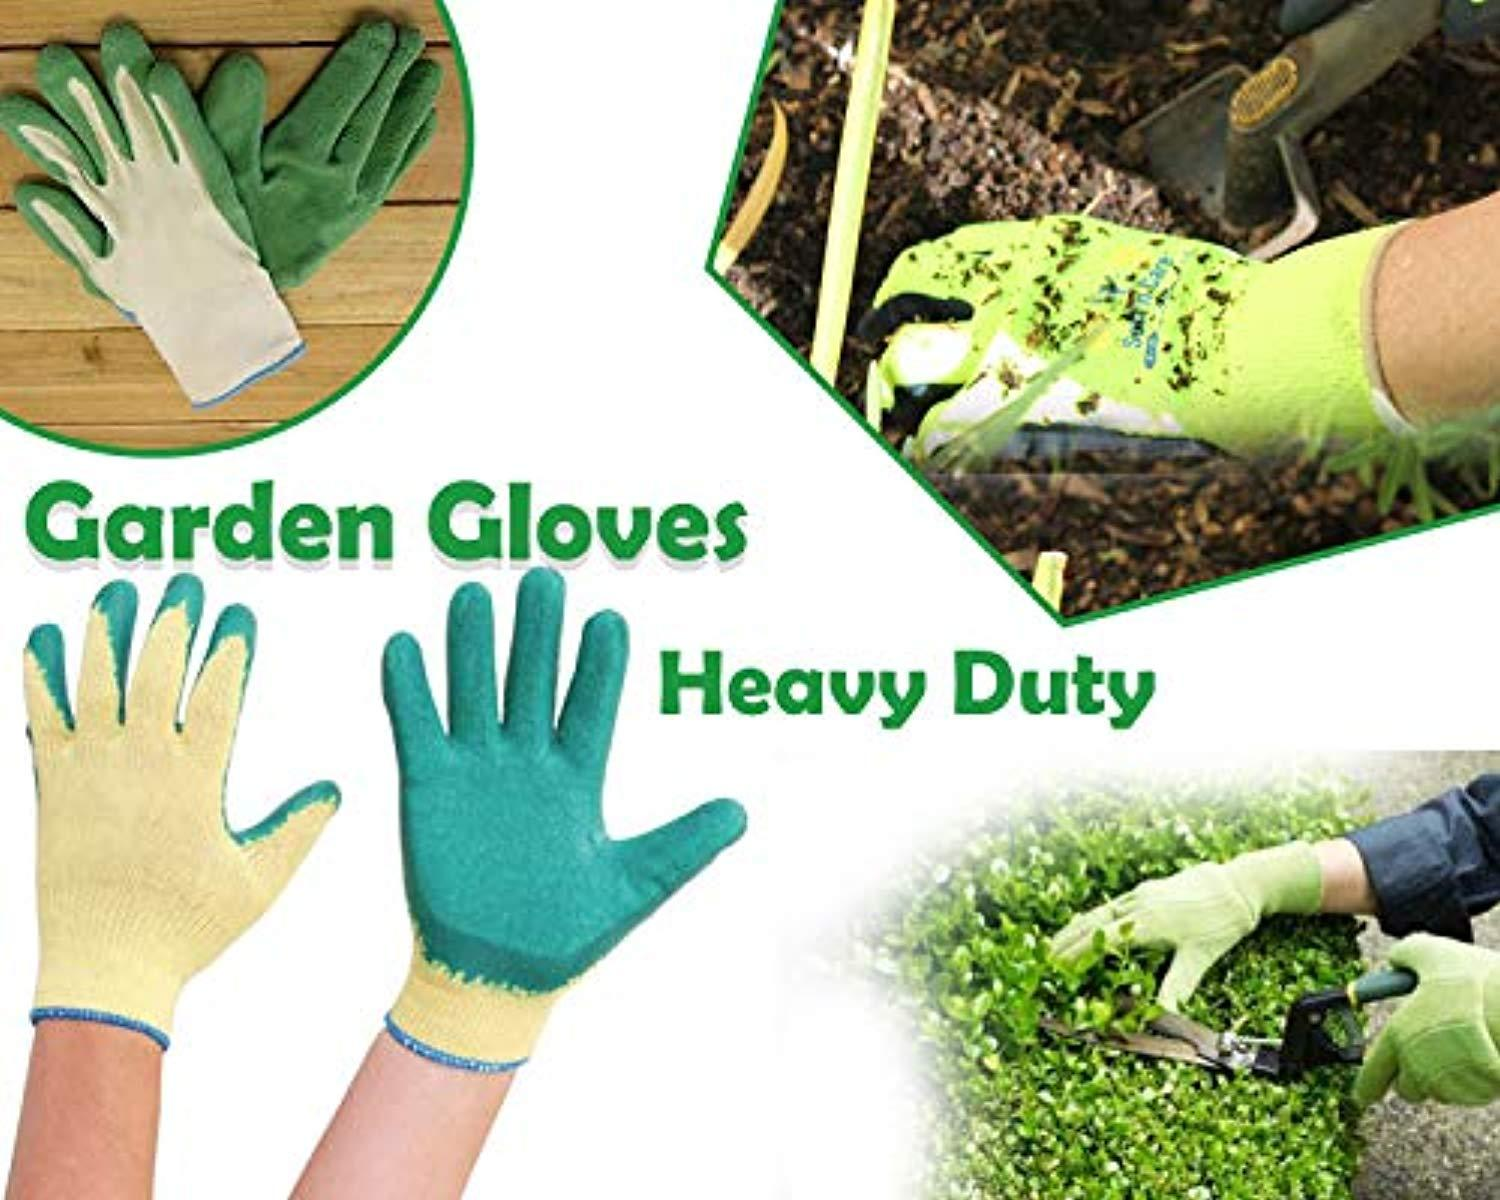 Own wishes Gardening Tools - Falcon Gloves, Flower Cutter/Scissor & Garden Tool Wooden Handle (3pcs-Hand Cultivator, Small Trowel, Garden Fork)